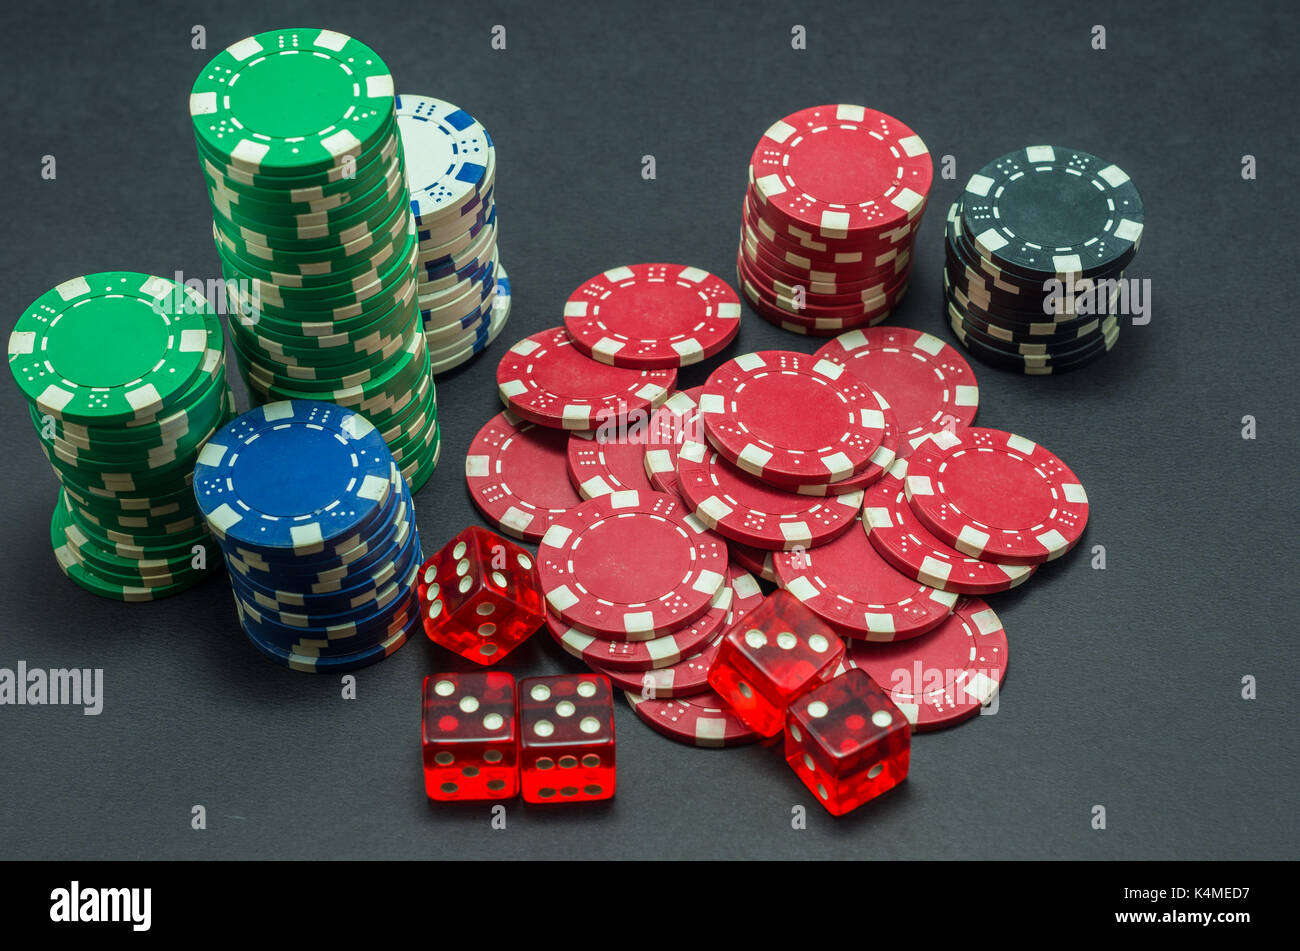 Poker chips stacked on black background and 5 red dice - Stock Image